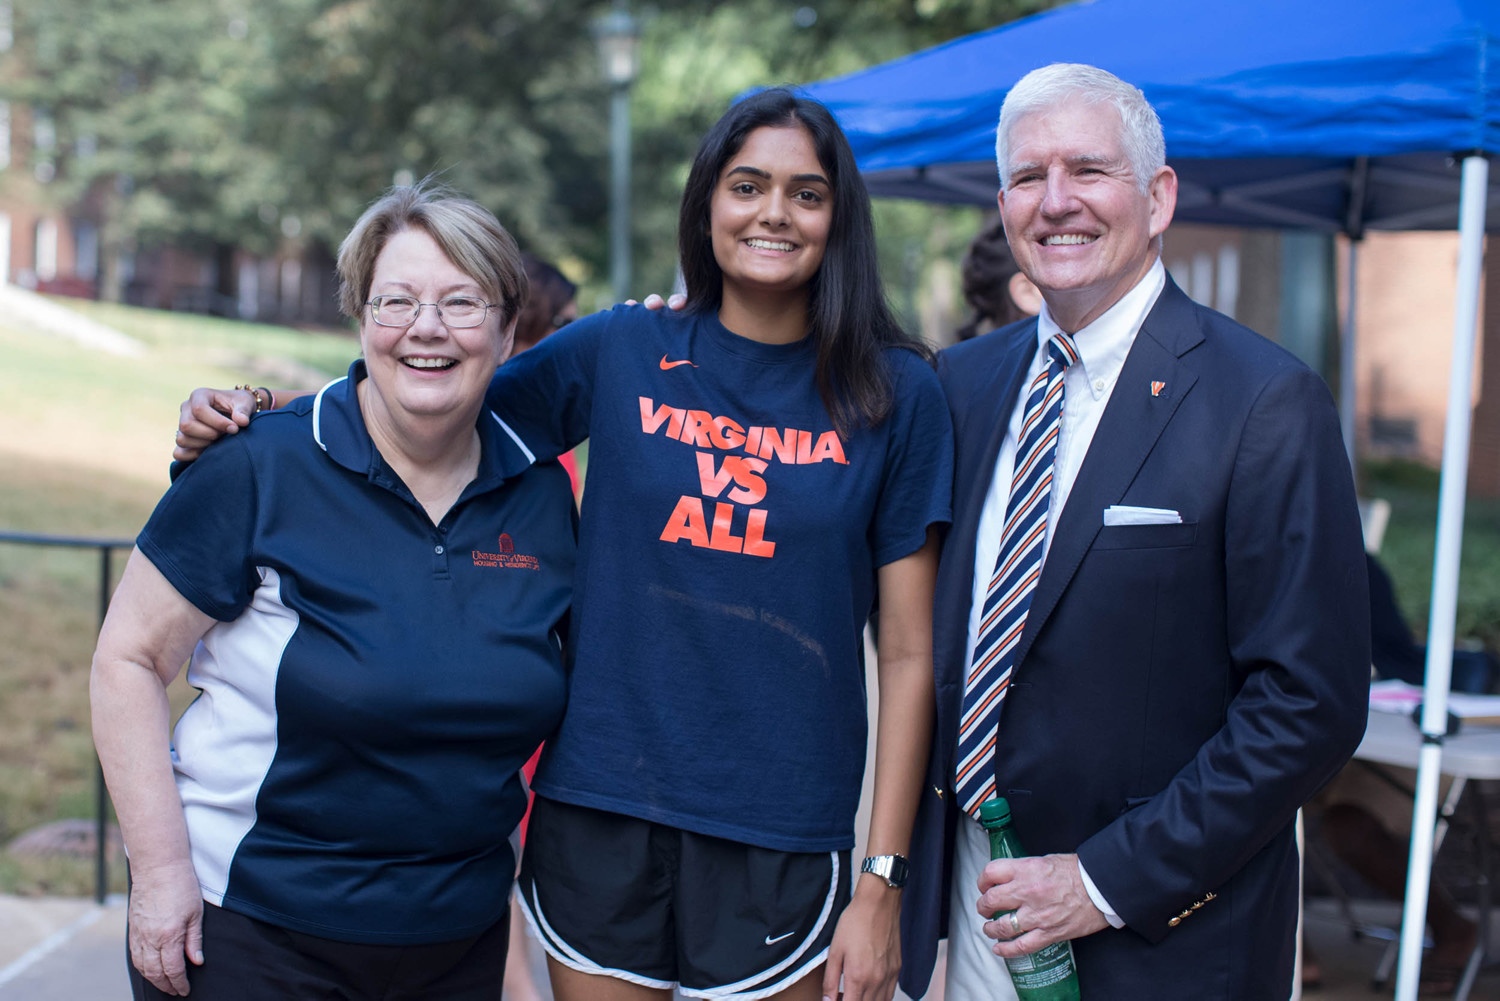 UVA Dean of Students Allen Groves and President Teresa A. Sullivan greeted students and their families as they arrived on Grounds to move into their residence halls.